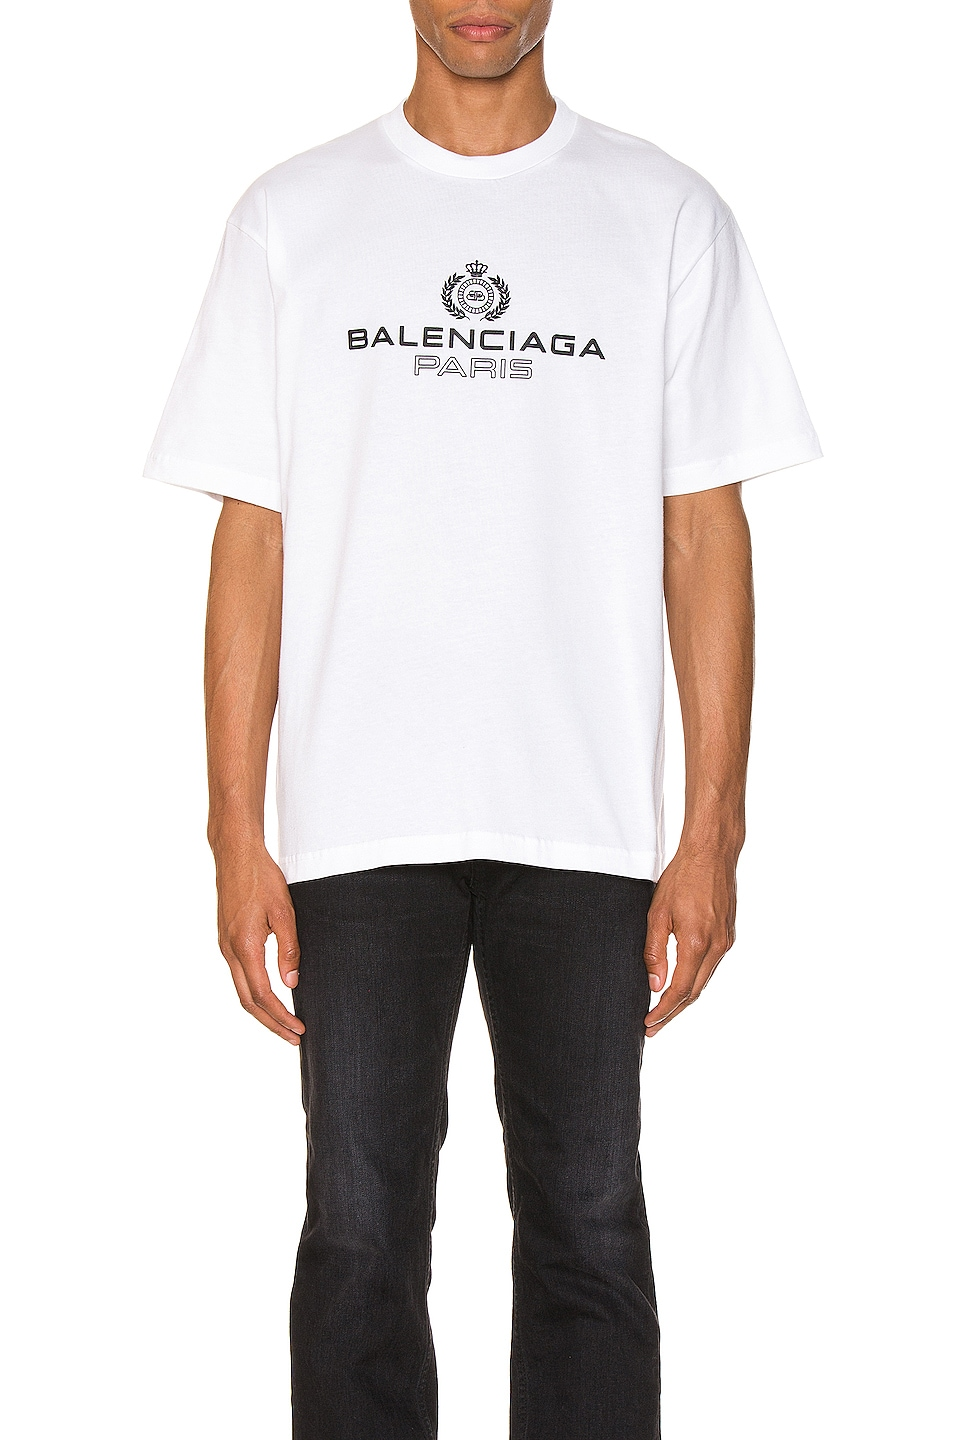 Image 1 of Balenciaga Paris Laurel Tee in White